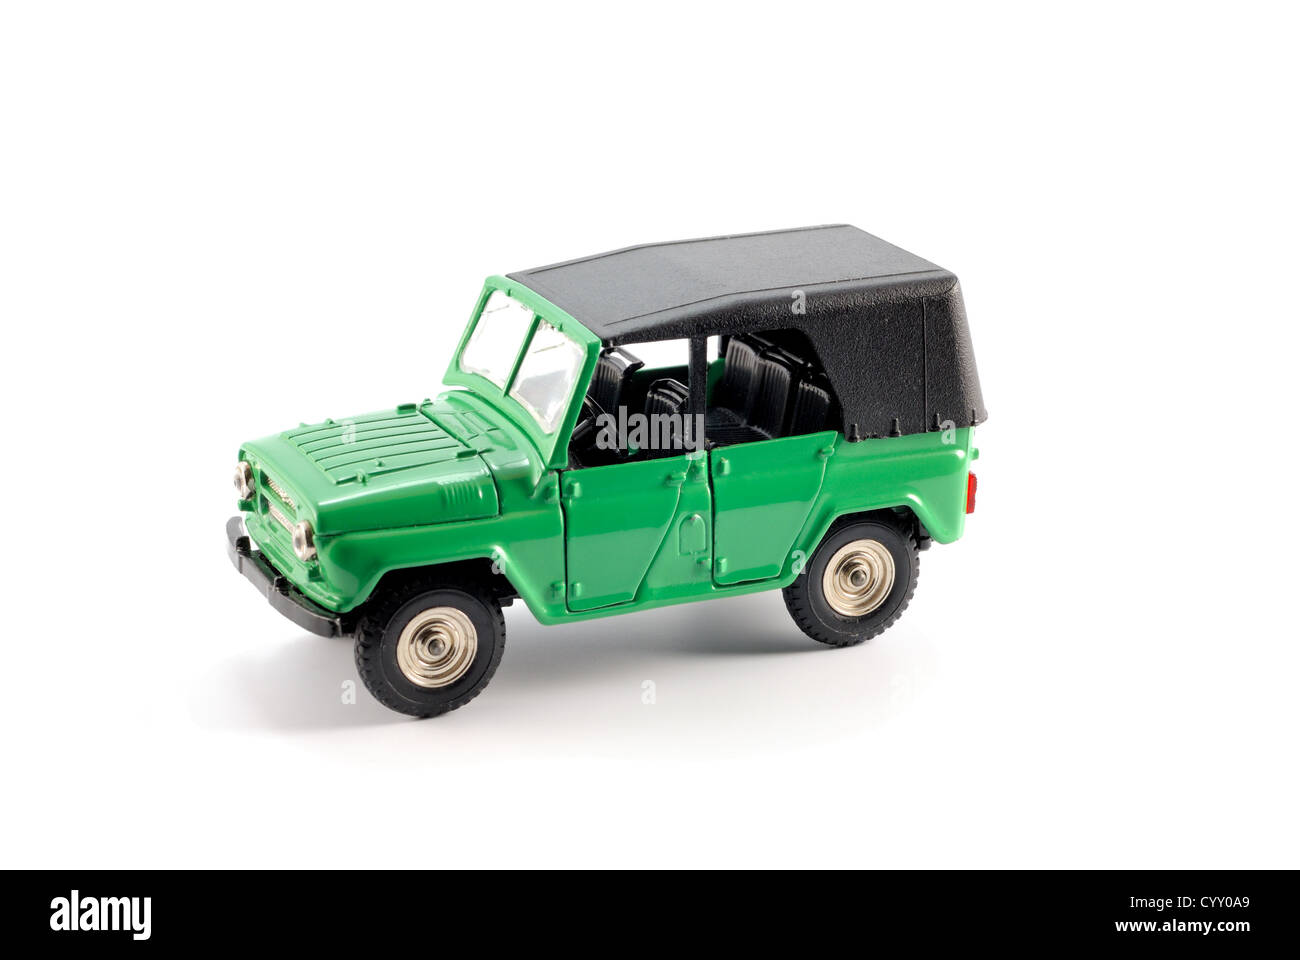 Collection scale model the Off-road car on a light background - Stock Image